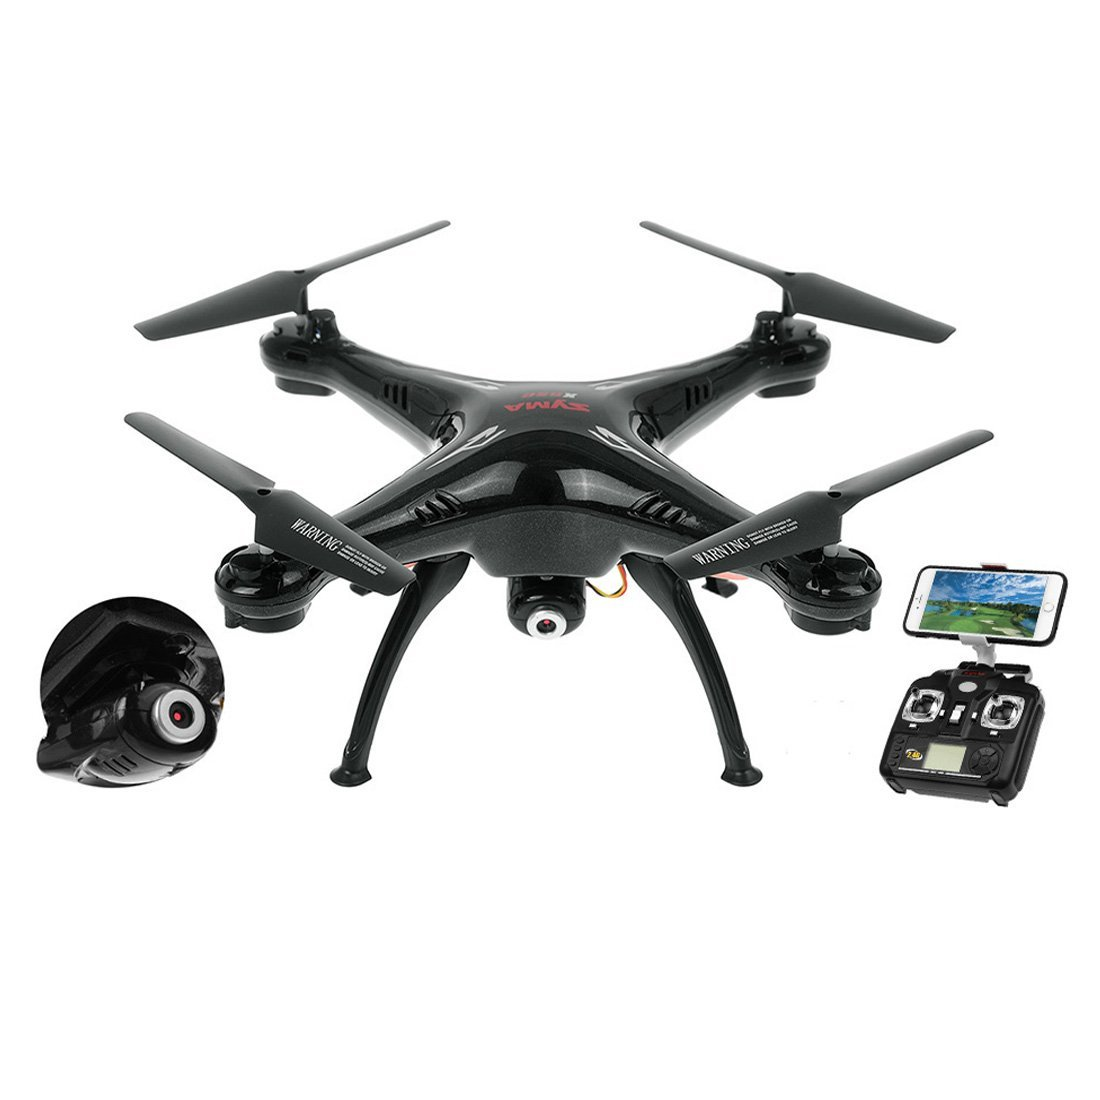 Syma X5SW Axis Gyro RC Headless Quadcopter With Wifi Camera (FPV) Drone